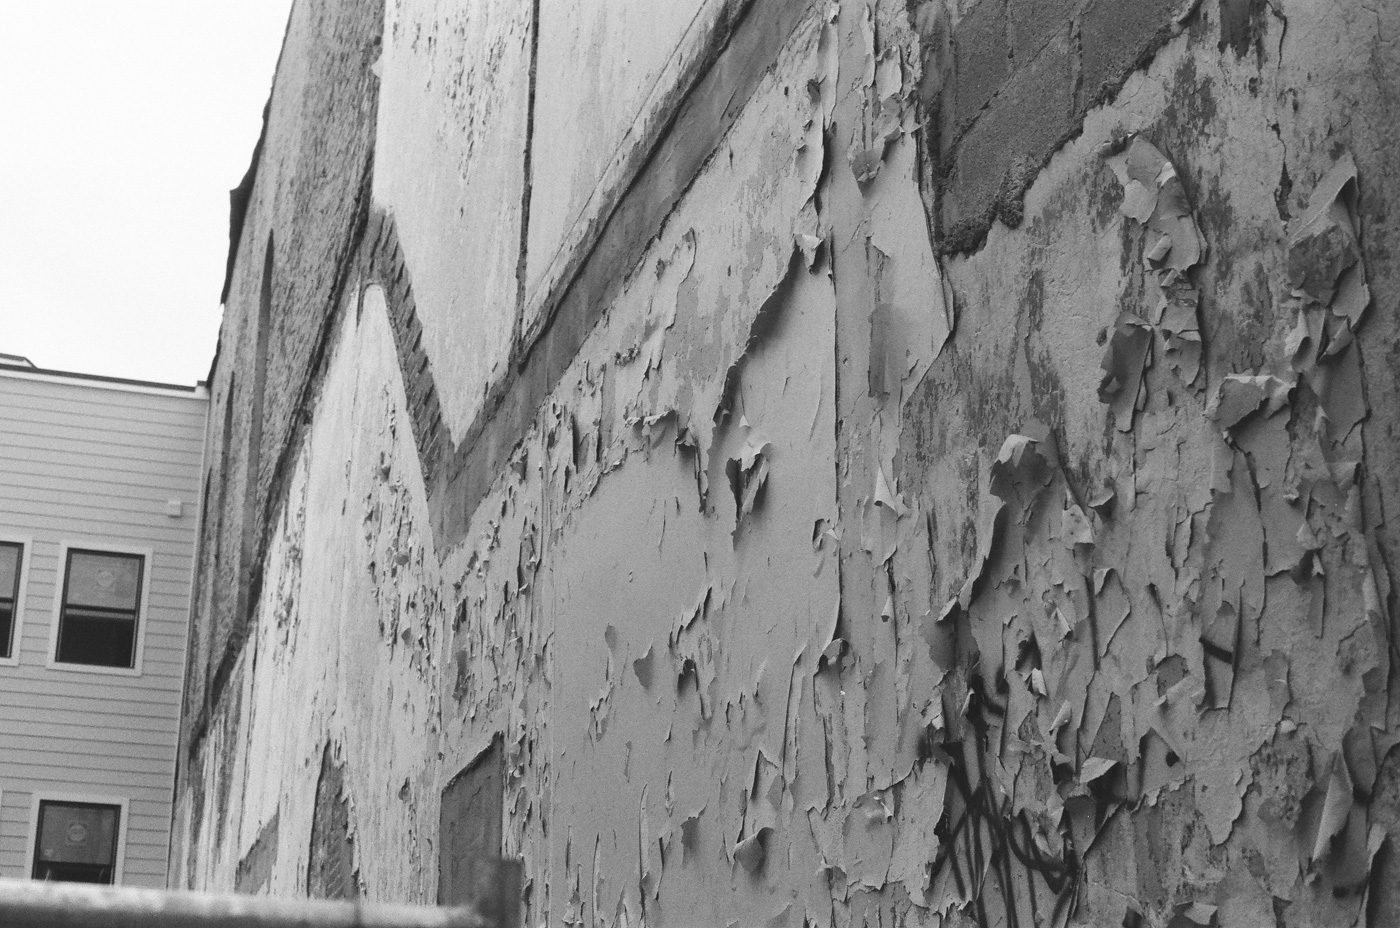 Deteriorating Wall